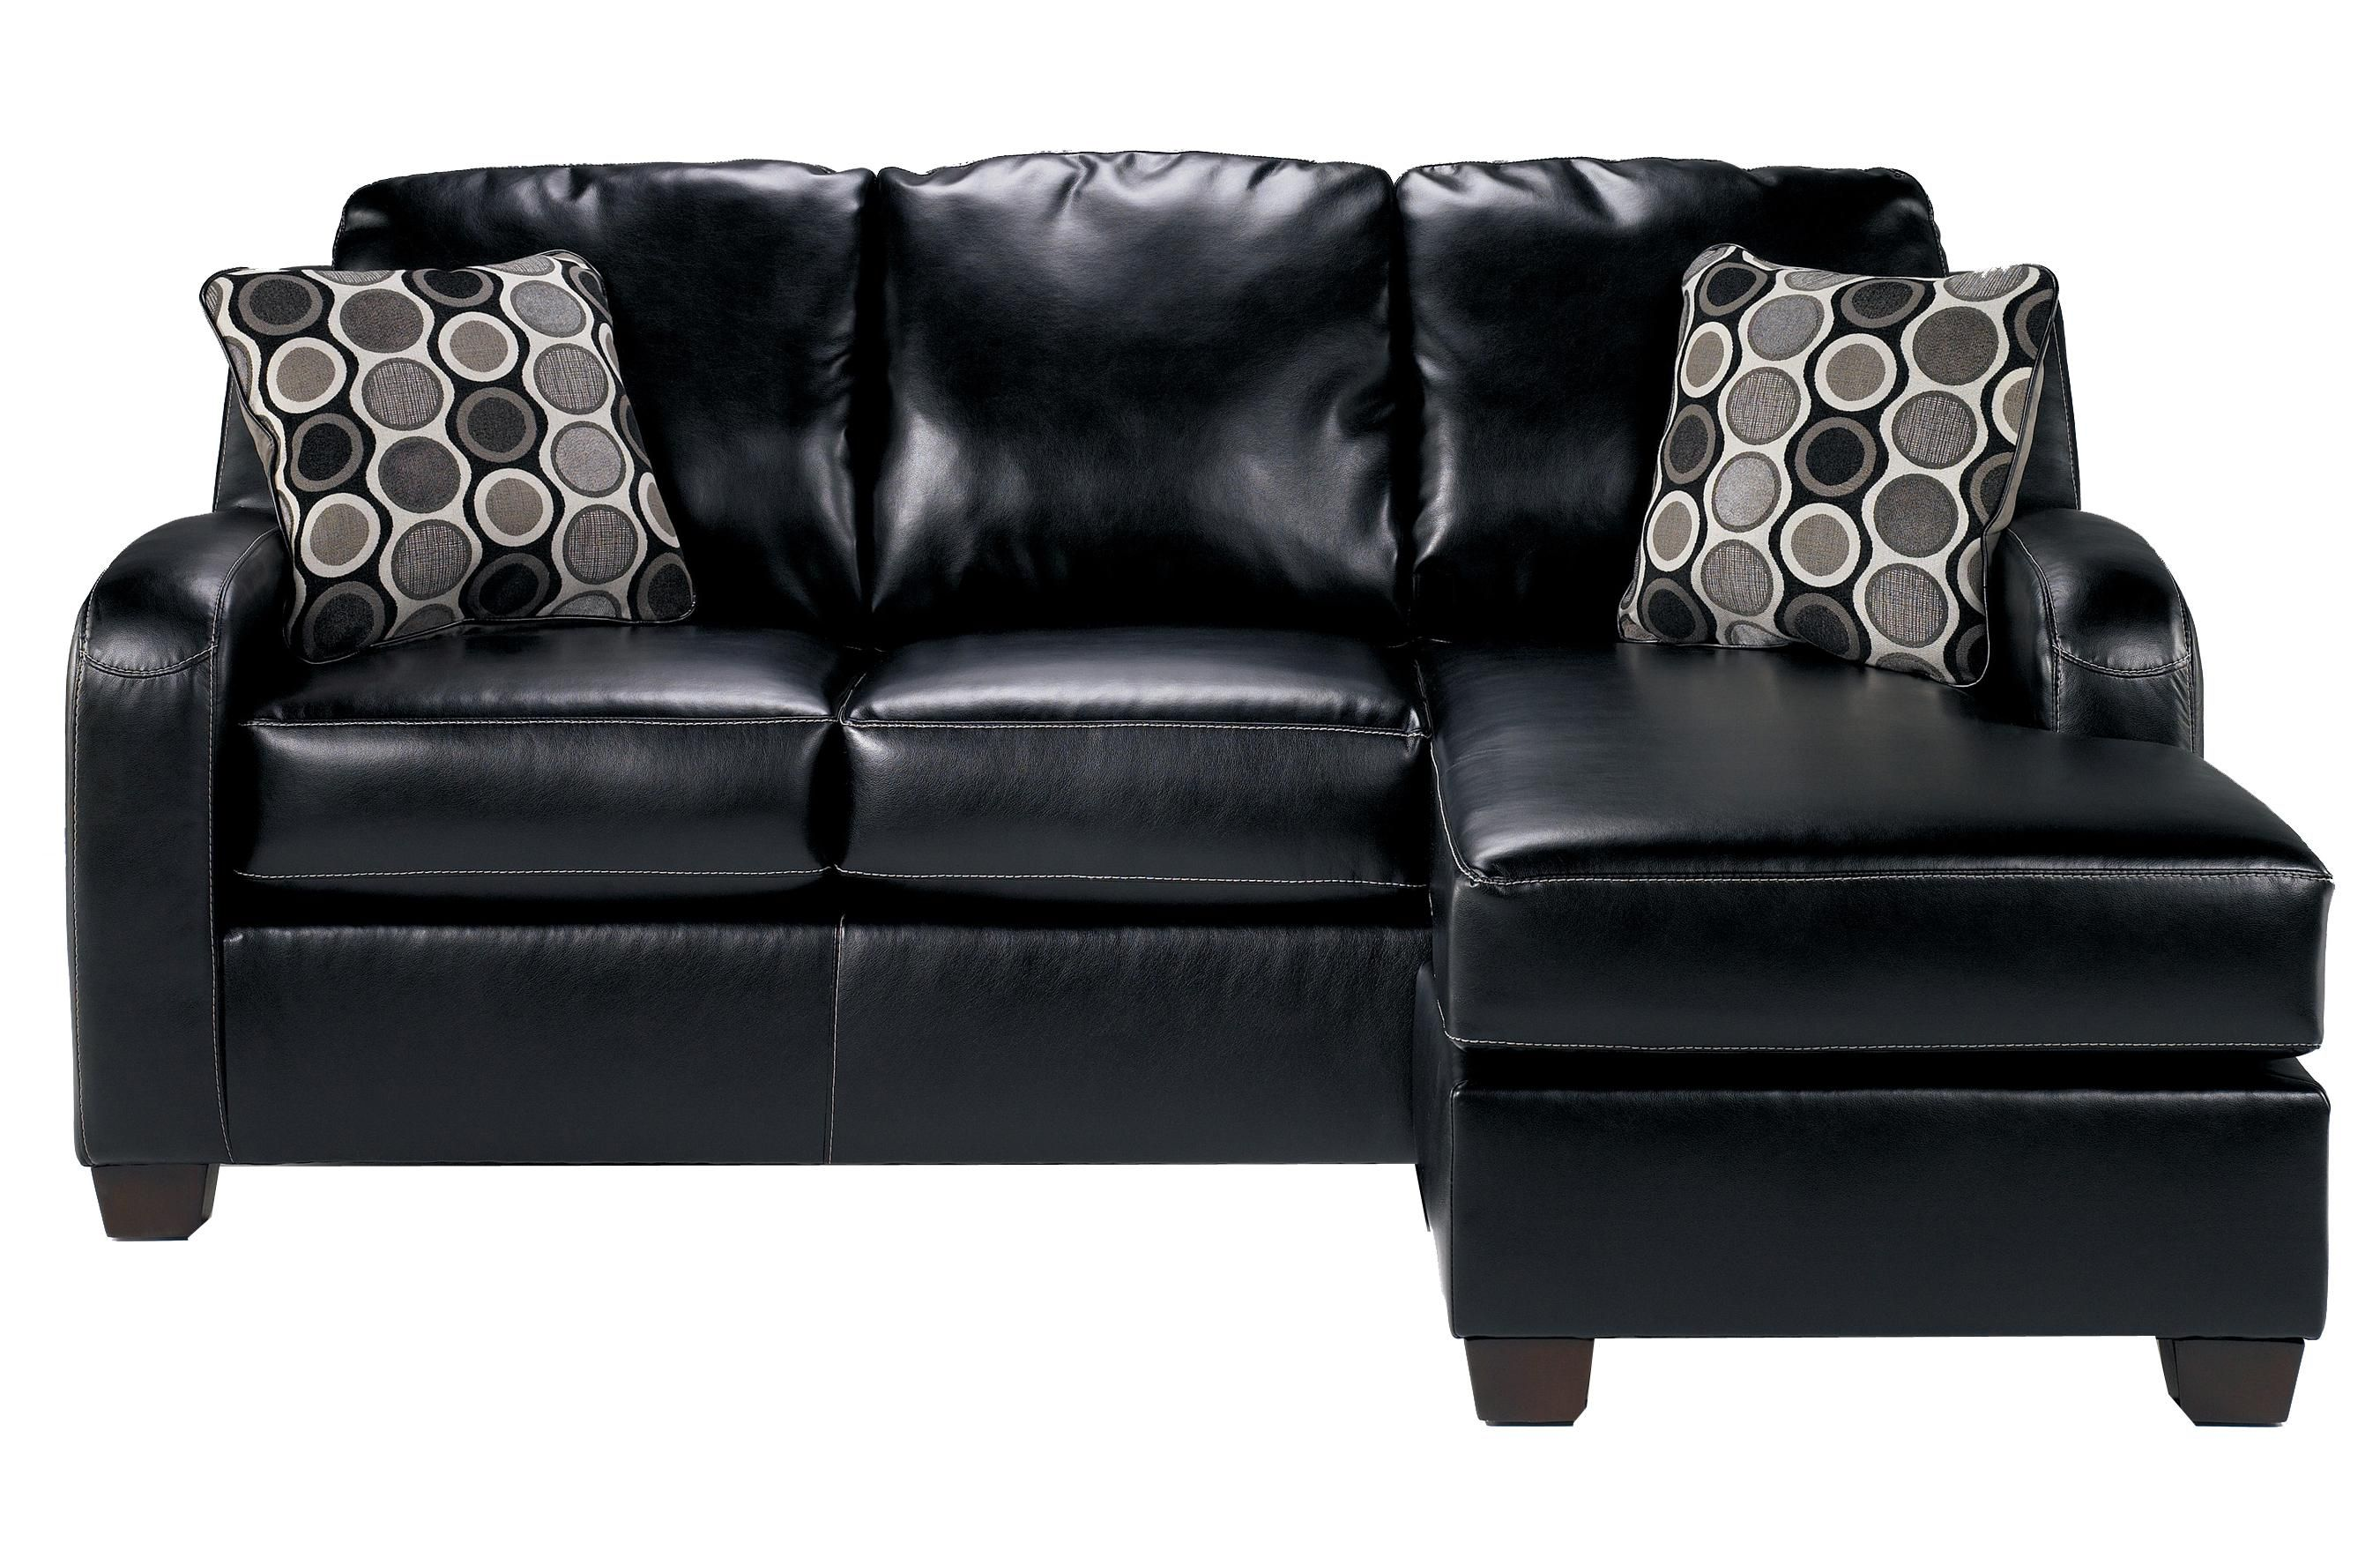 Devin DuraBlend   Black Sofa Chaise By Signature Design By Ashley